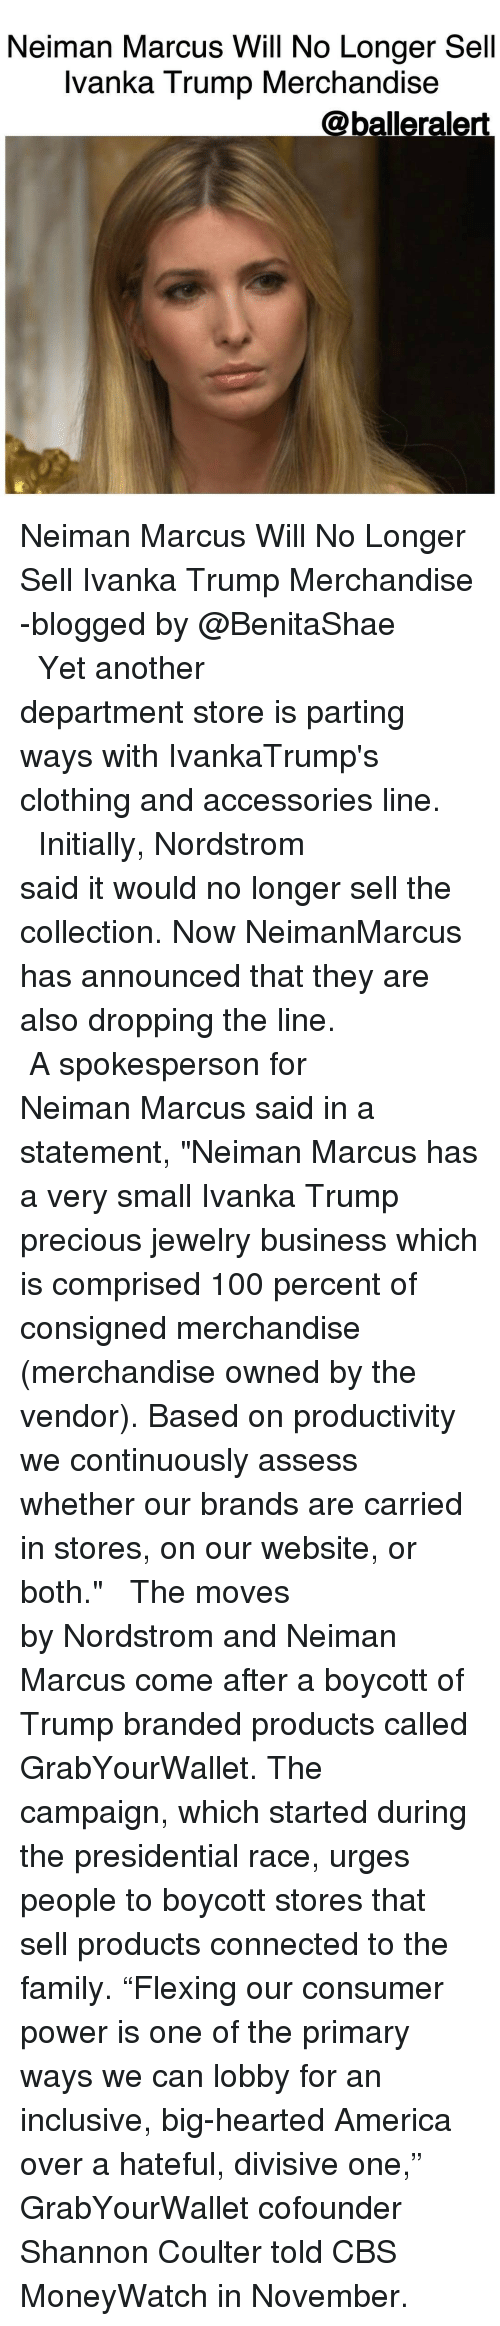 "Initialisms: Neiman Marcus Will No Longer Sell  Ivanka Trump Merchandise  @balleralert. Neiman Marcus Will No Longer Sell Ivanka Trump Merchandise -blogged by @BenitaShae ⠀⠀⠀⠀⠀⠀⠀⠀⠀ ⠀⠀⠀⠀⠀⠀⠀⠀⠀ Yet another department store is parting ways with IvankaTrump's clothing and accessories line. ⠀⠀⠀⠀⠀⠀⠀⠀⠀ ⠀⠀⠀⠀⠀⠀⠀⠀⠀ Initially, Nordstrom said it would no longer sell the collection. Now NeimanMarcus has announced that they are also dropping the line. ⠀⠀⠀⠀⠀⠀⠀⠀⠀ ⠀⠀⠀⠀⠀⠀⠀⠀⠀ A spokesperson for Neiman Marcus said in a statement, ""Neiman Marcus has a very small Ivanka Trump precious jewelry business which is comprised 100 percent of consigned merchandise (merchandise owned by the vendor). Based on productivity we continuously assess whether our brands are carried in stores, on our website, or both."" ⠀⠀⠀⠀⠀⠀⠀⠀⠀ ⠀⠀⠀⠀⠀⠀⠀⠀⠀ The moves by Nordstrom and Neiman Marcus come after a boycott of Trump branded products called GrabYourWallet. The campaign, which started during the presidential race, urges people to boycott stores that sell products connected to the family. ""Flexing our consumer power is one of the primary ways we can lobby for an inclusive, big-hearted America over a hateful, divisive one,"" GrabYourWallet cofounder Shannon Coulter told CBS MoneyWatch in November."